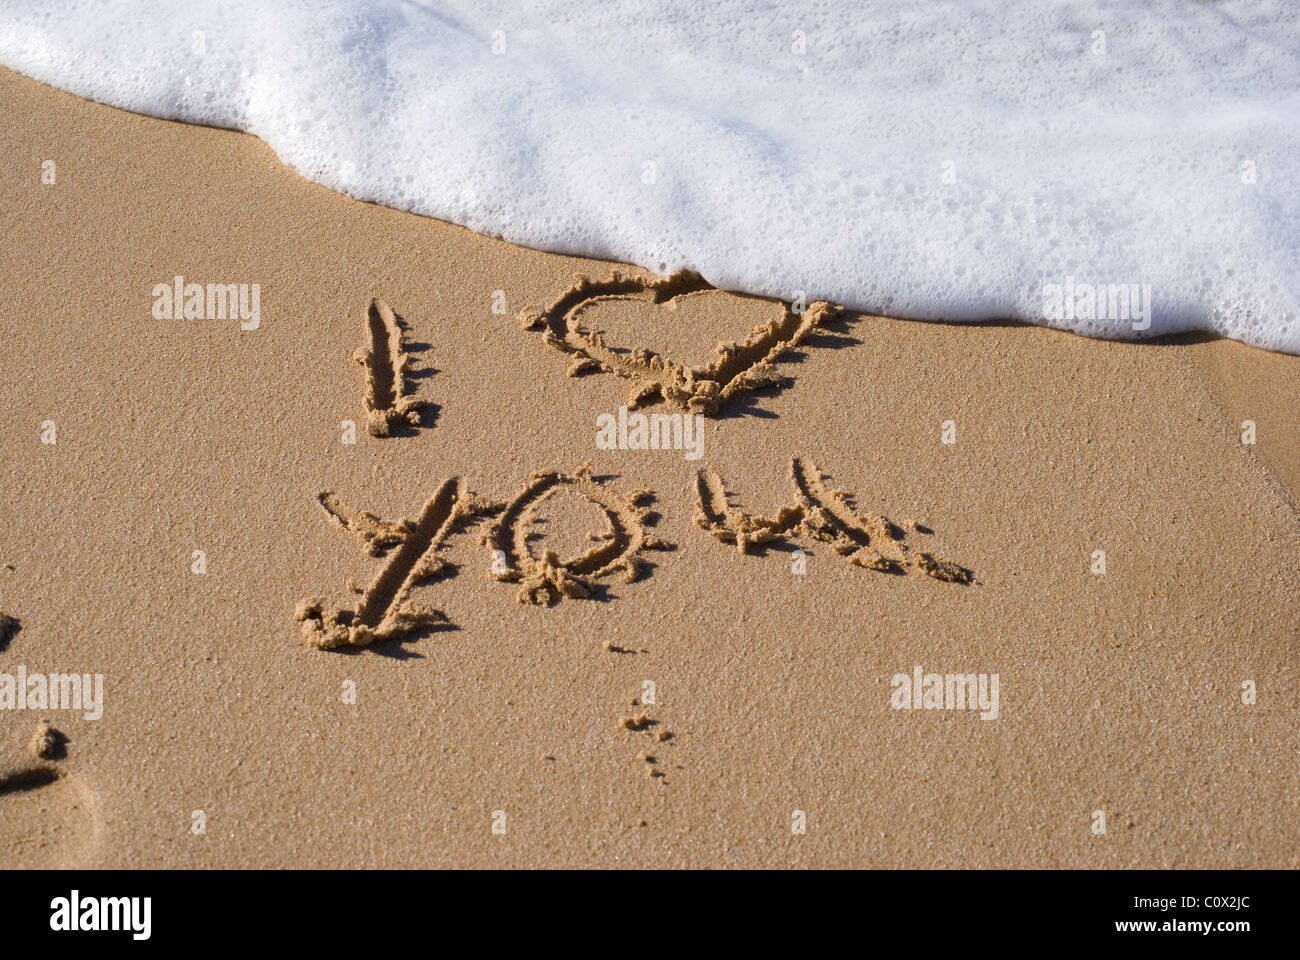 Writing in the sand (I love you) - Stock Image